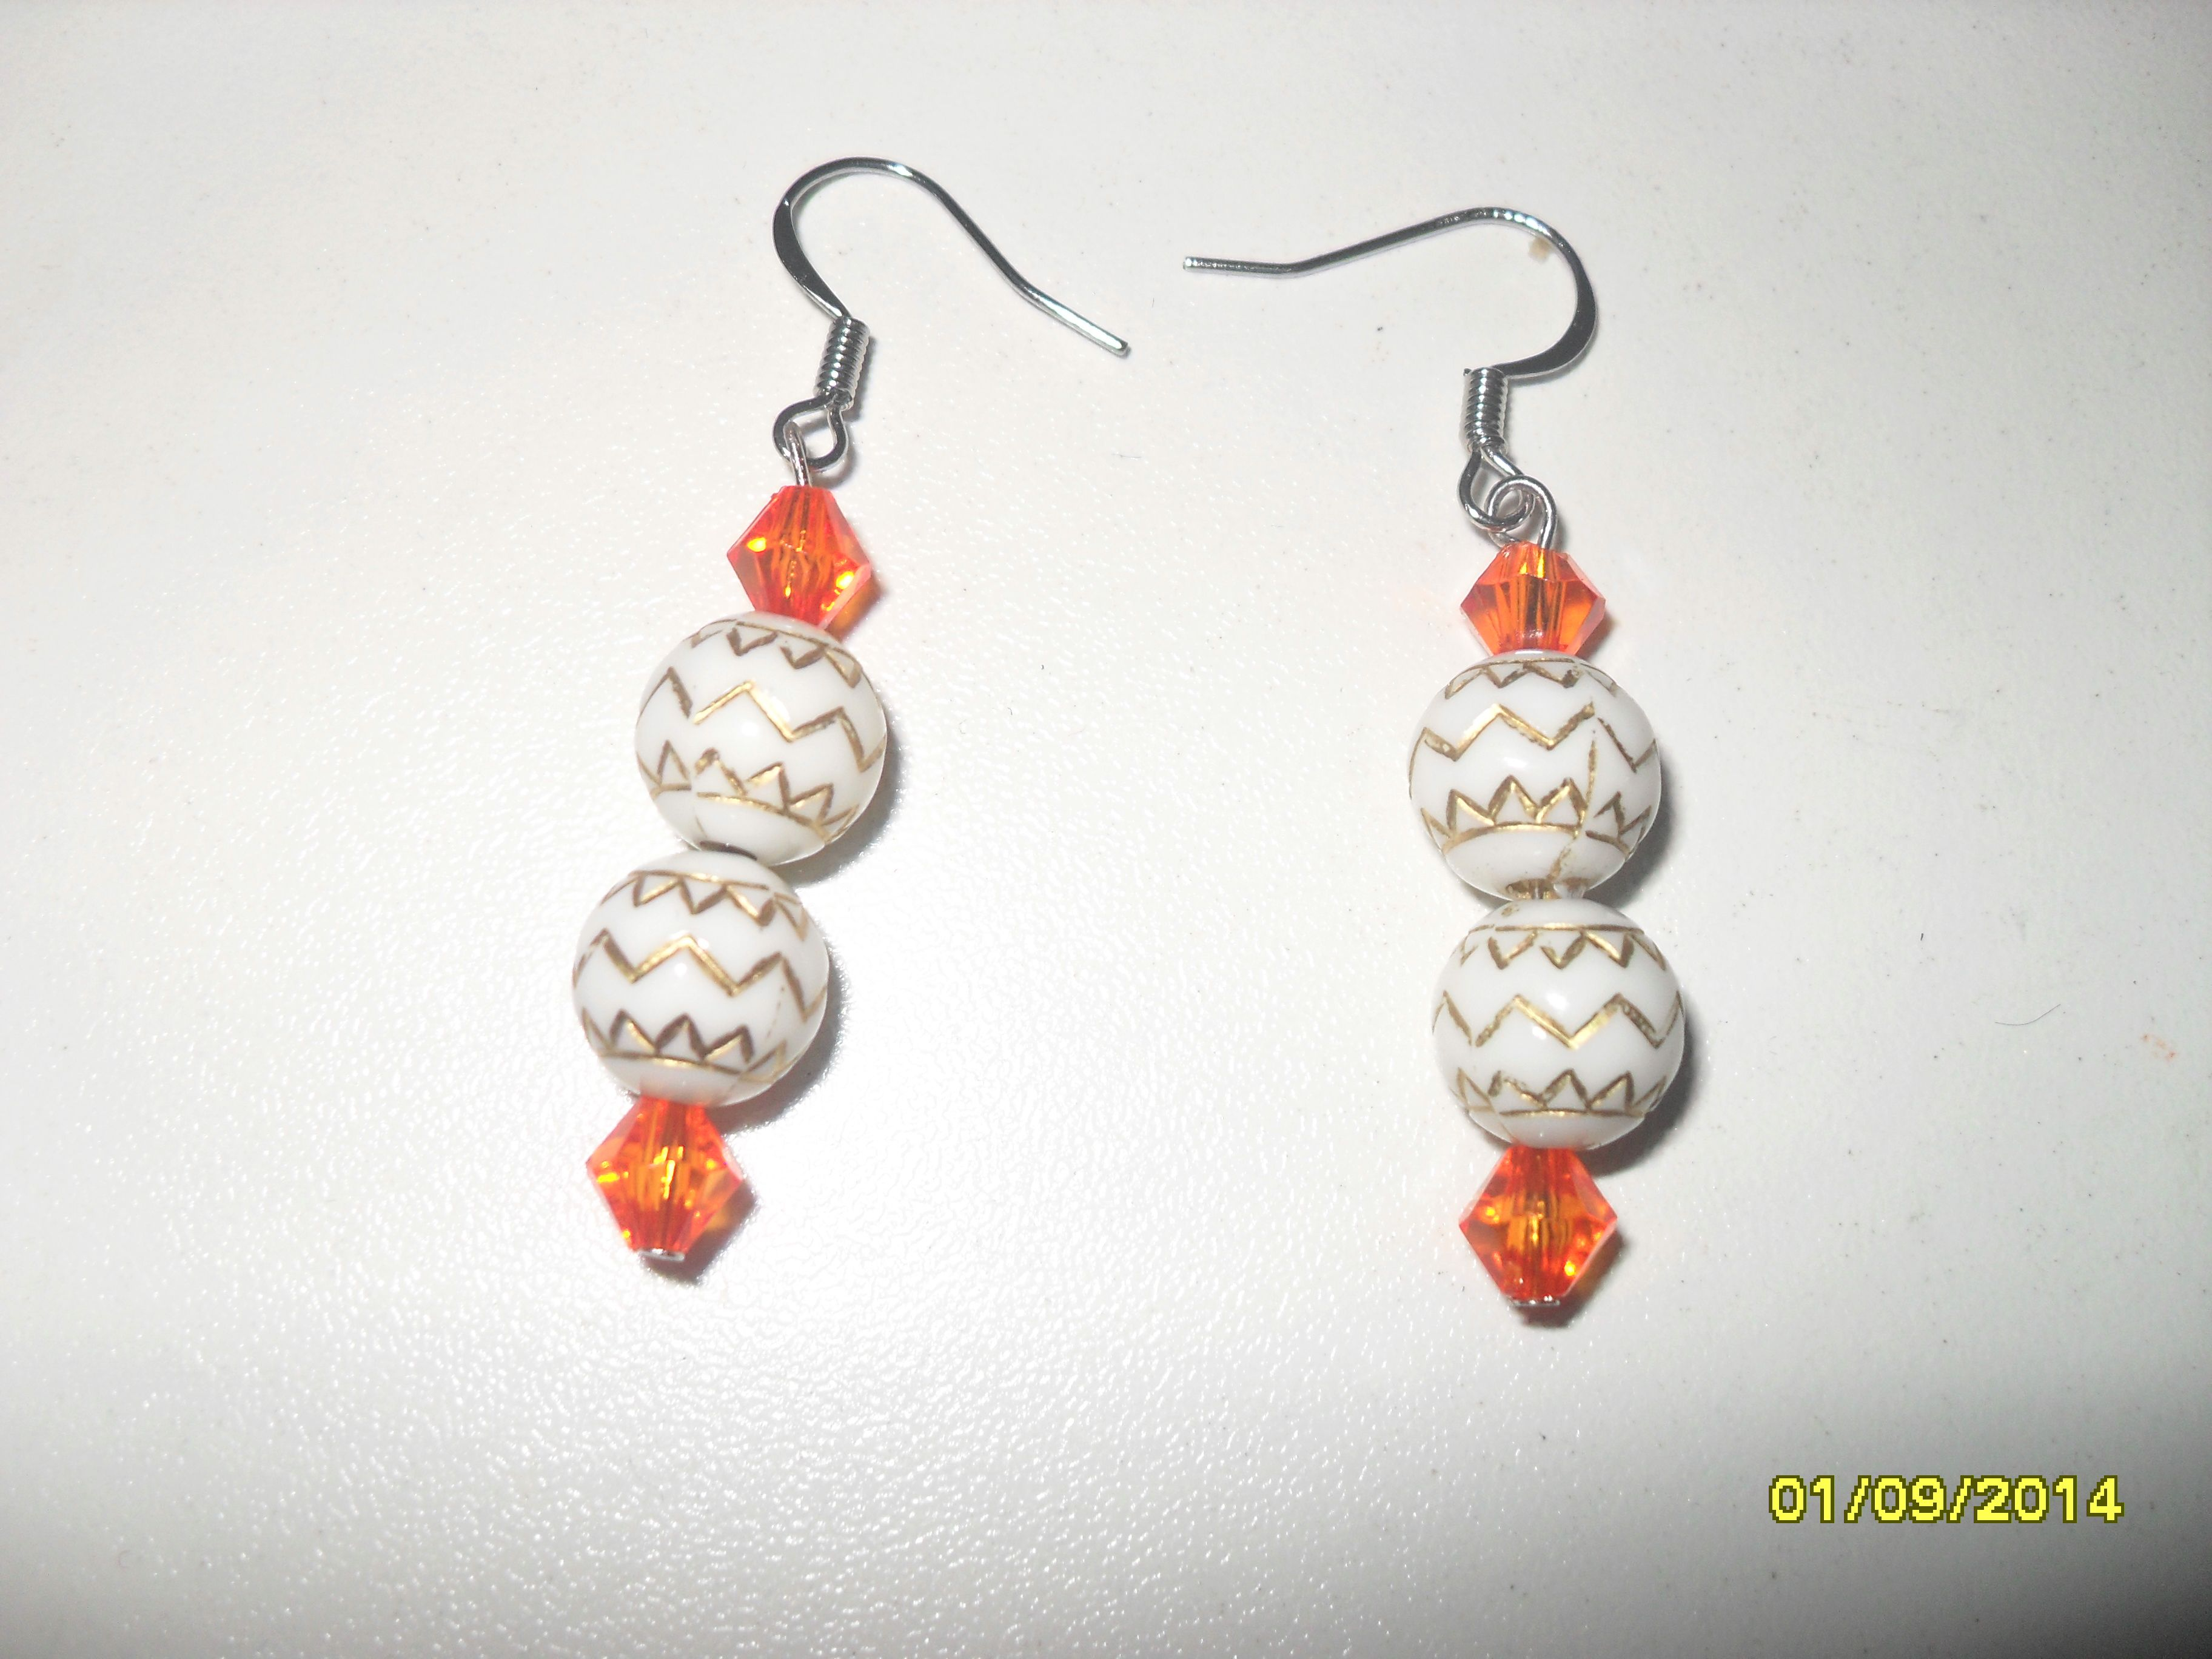 Small dangle earrings made with white round beads with gold design and orange diamond shaped beads.